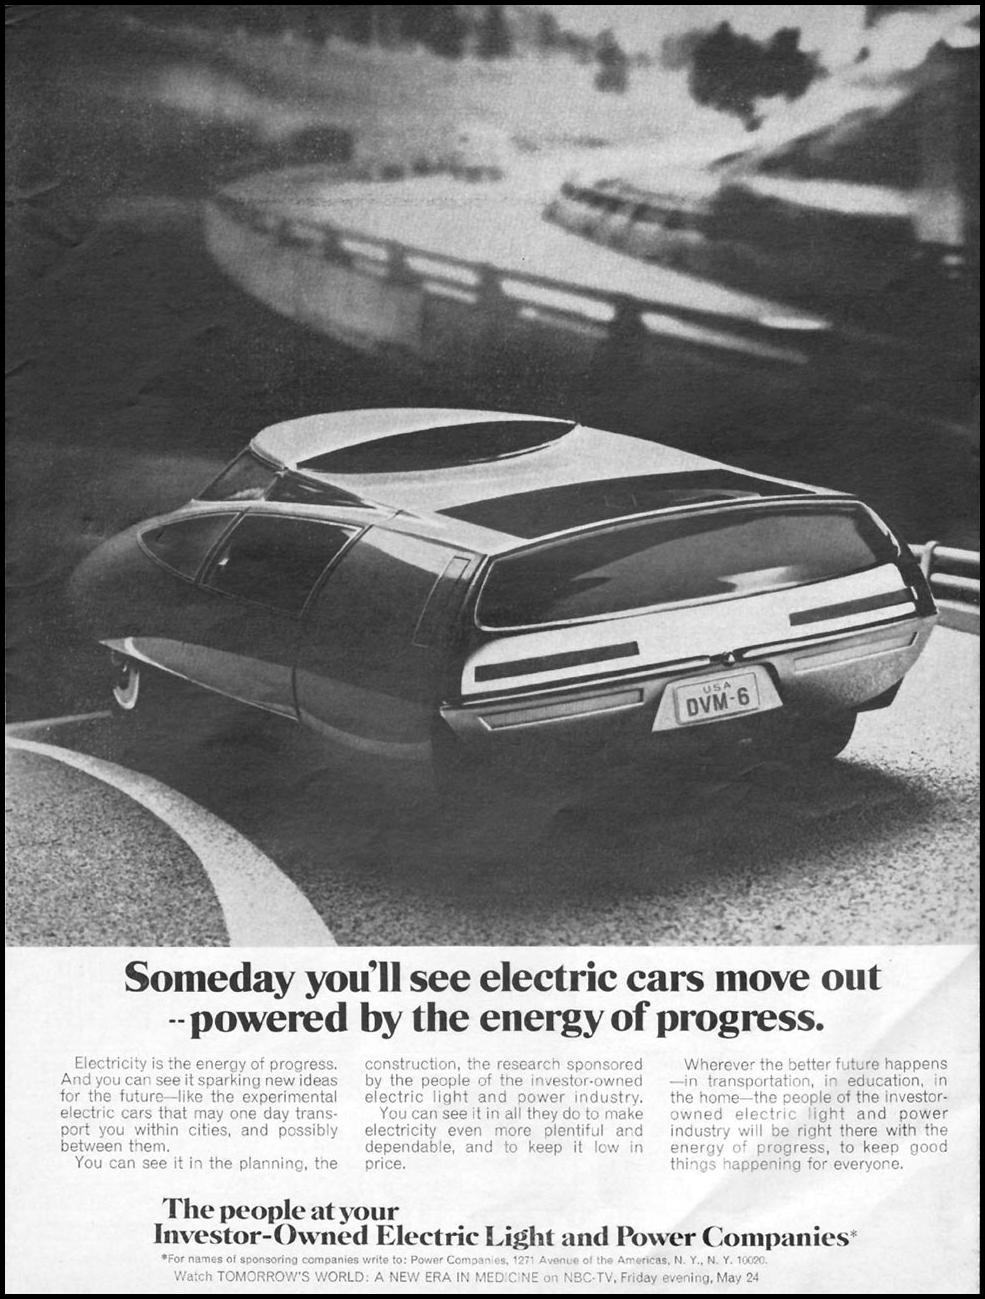 ELECTRIC CARS NEWSWEEK 05/20/1968 p. 1